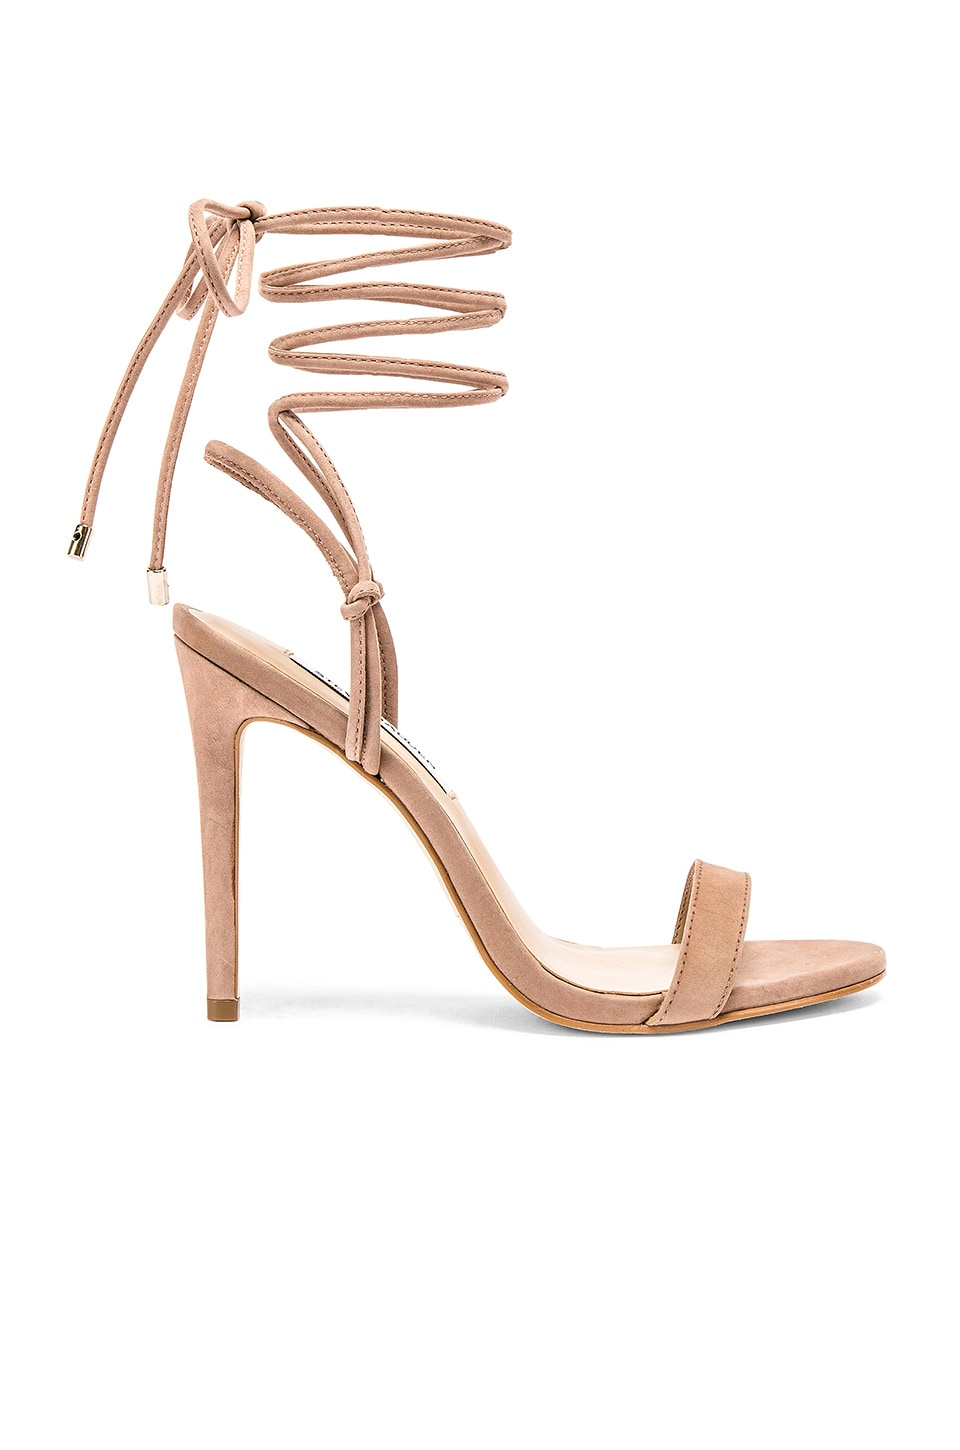 Steve Madden Level Sandal in Blush